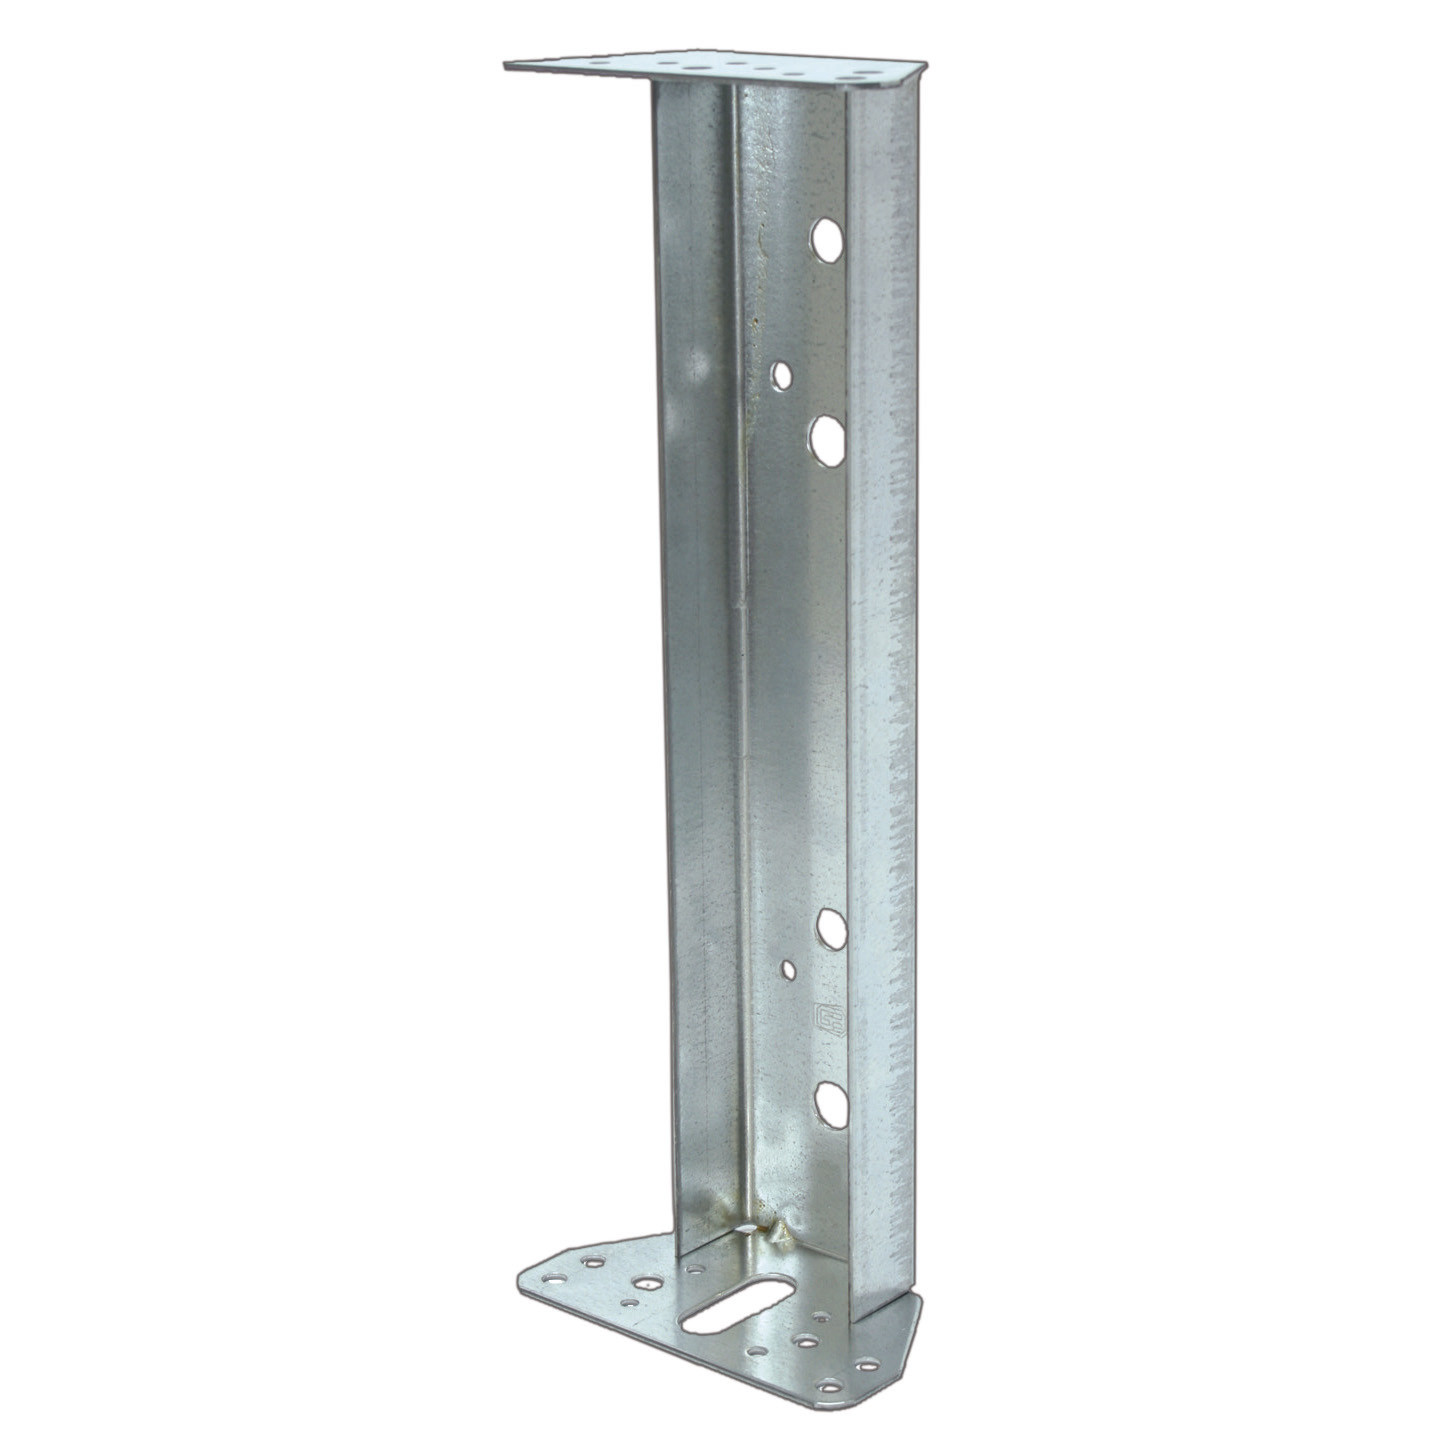 Window front frame support 60x70x300 115x2 ZM